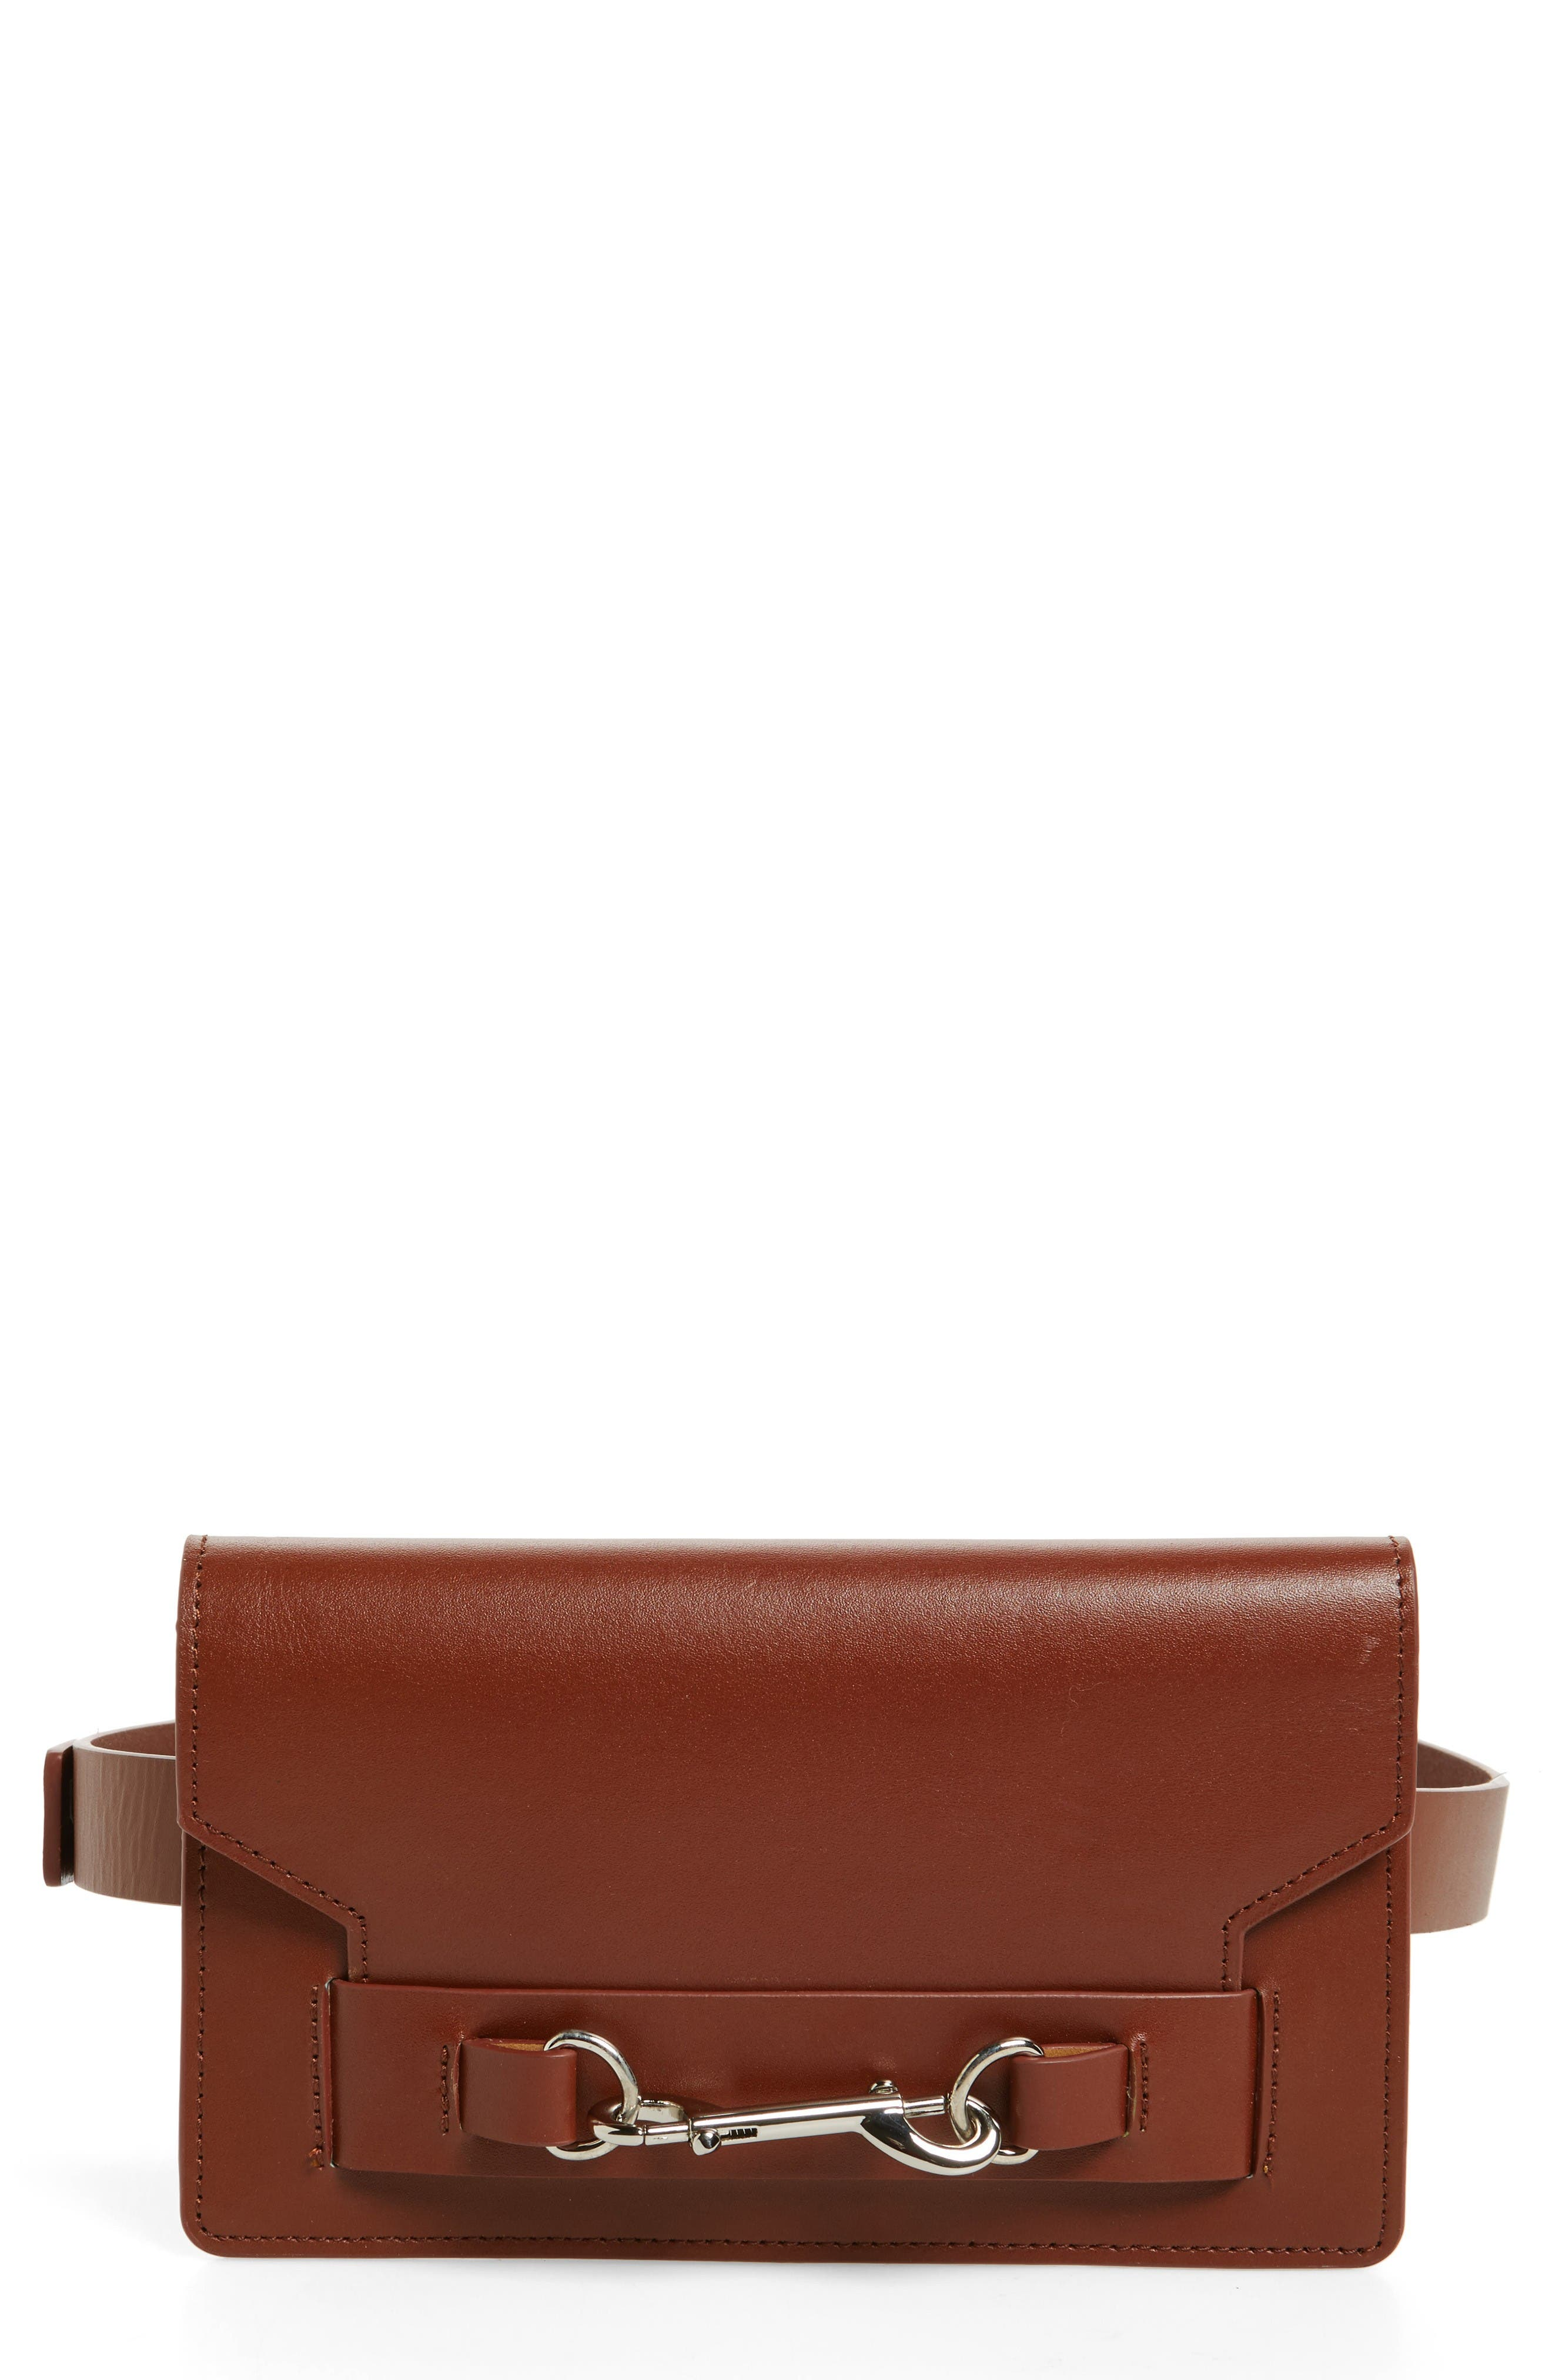 Alternate Image 1 Selected - Rebecca Minkoff Belt Bag